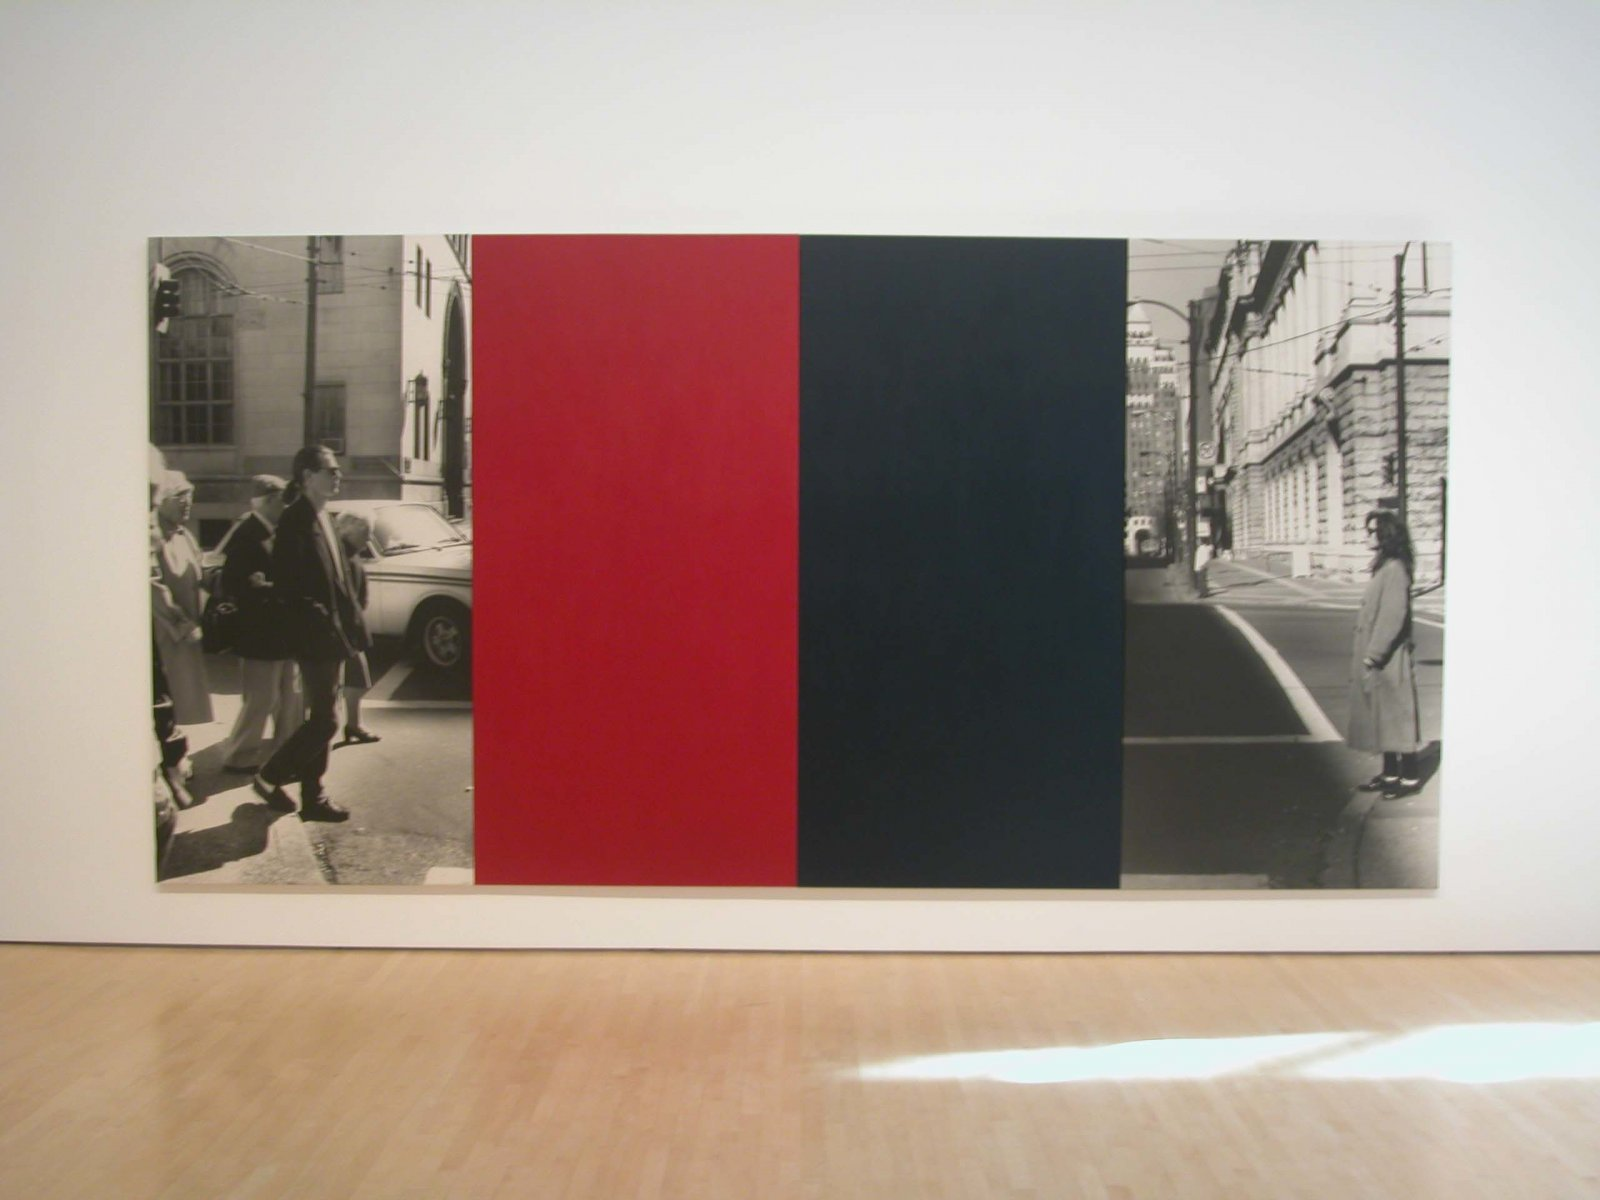 Ian Wallace,At the Crosswalk, 1988, photolaminate and acrylic on canvas,195 x 110 in. (496 × 279 cm)